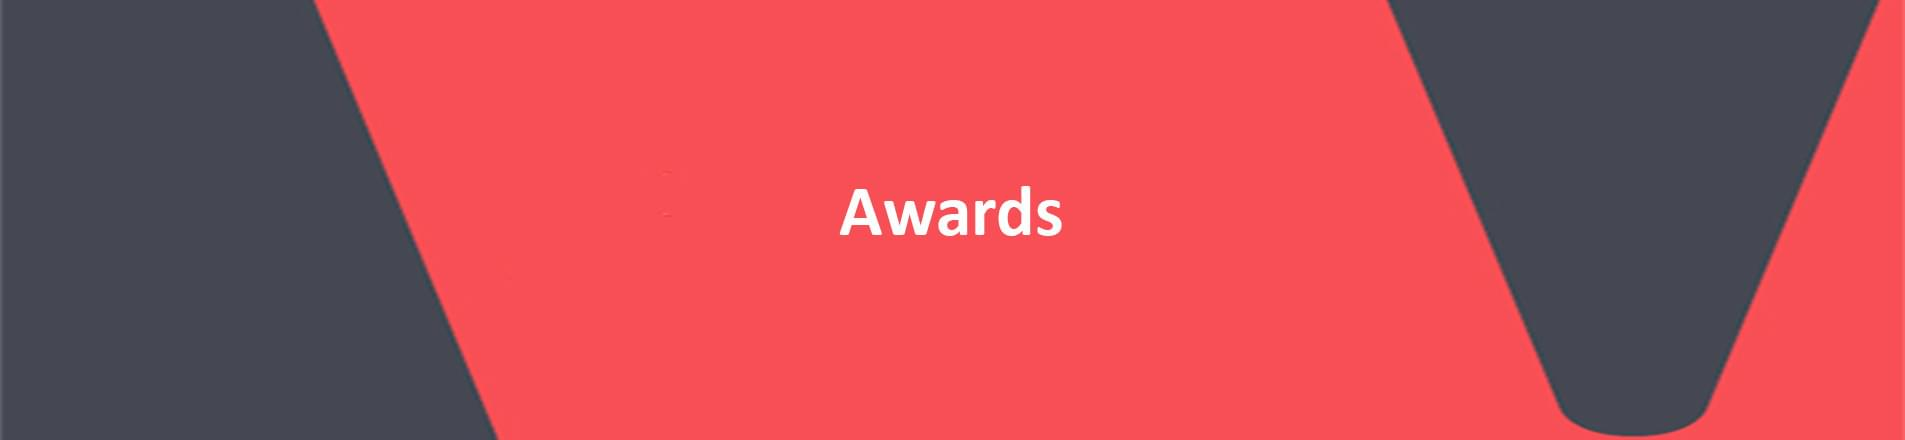 """VERCIDA logo banner.  Red background with word """"Awards"""" in white text."""